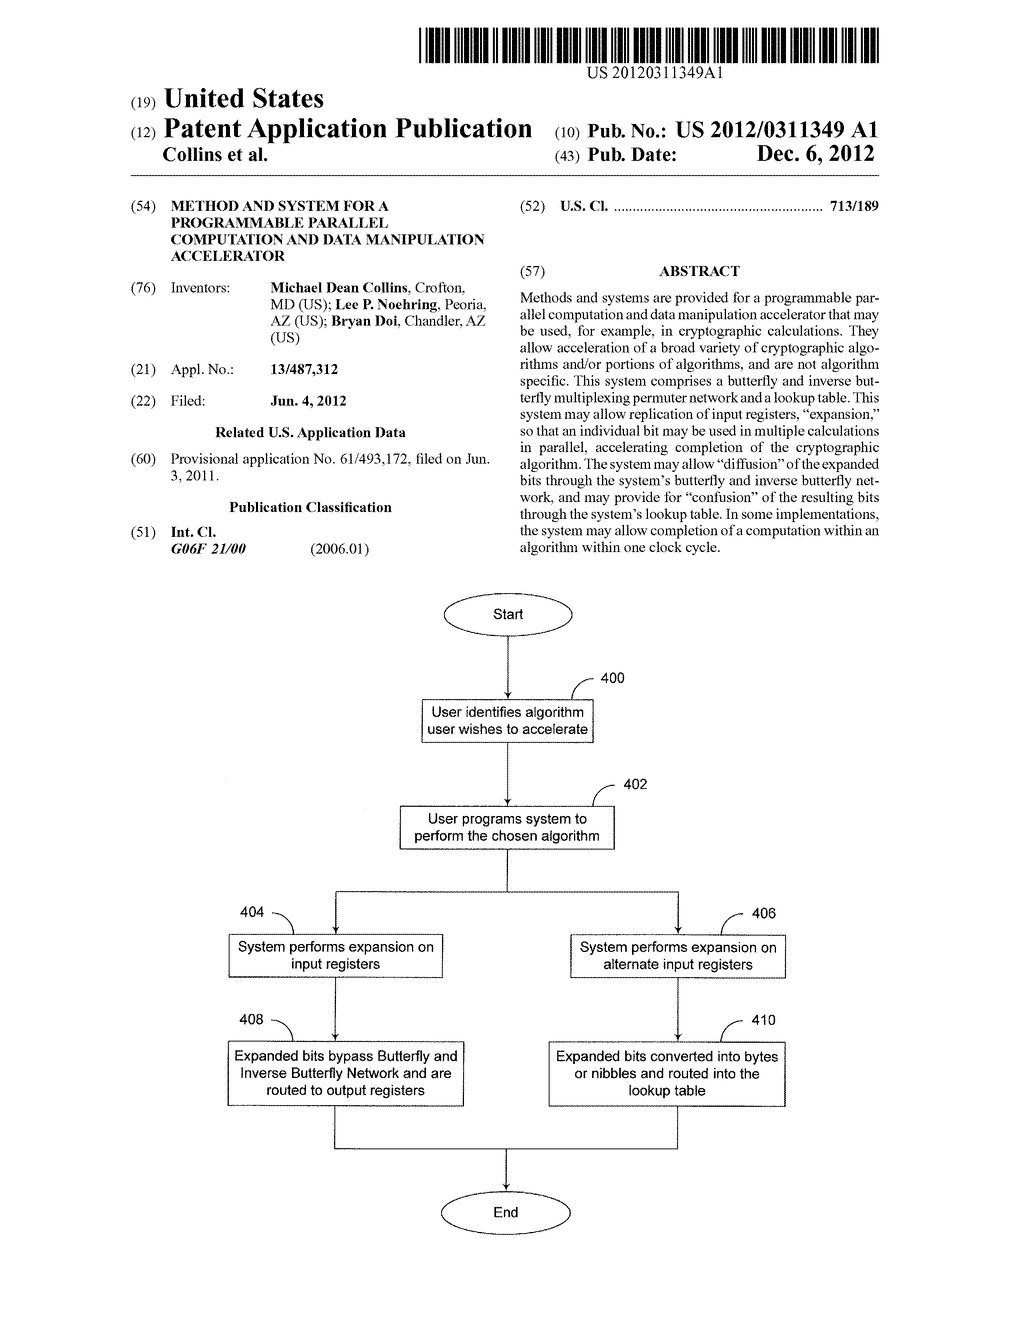 Method and System for a Programmable Parallel Computation and Data     Manipulation Accelerator - diagram, schematic, and image 01